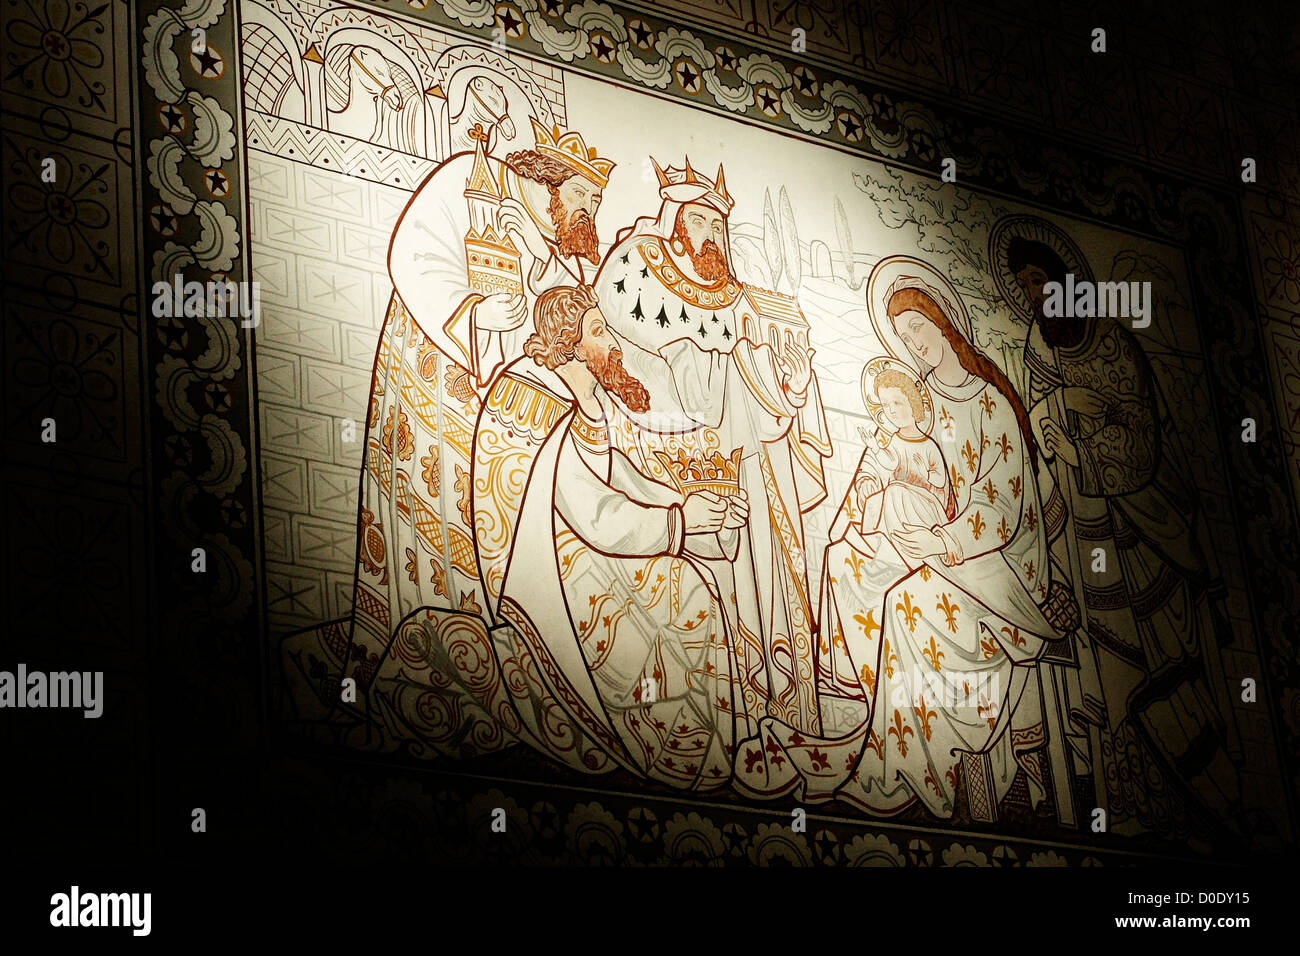 nativity painting stockfotos nativity painting bilder alamy. Black Bedroom Furniture Sets. Home Design Ideas